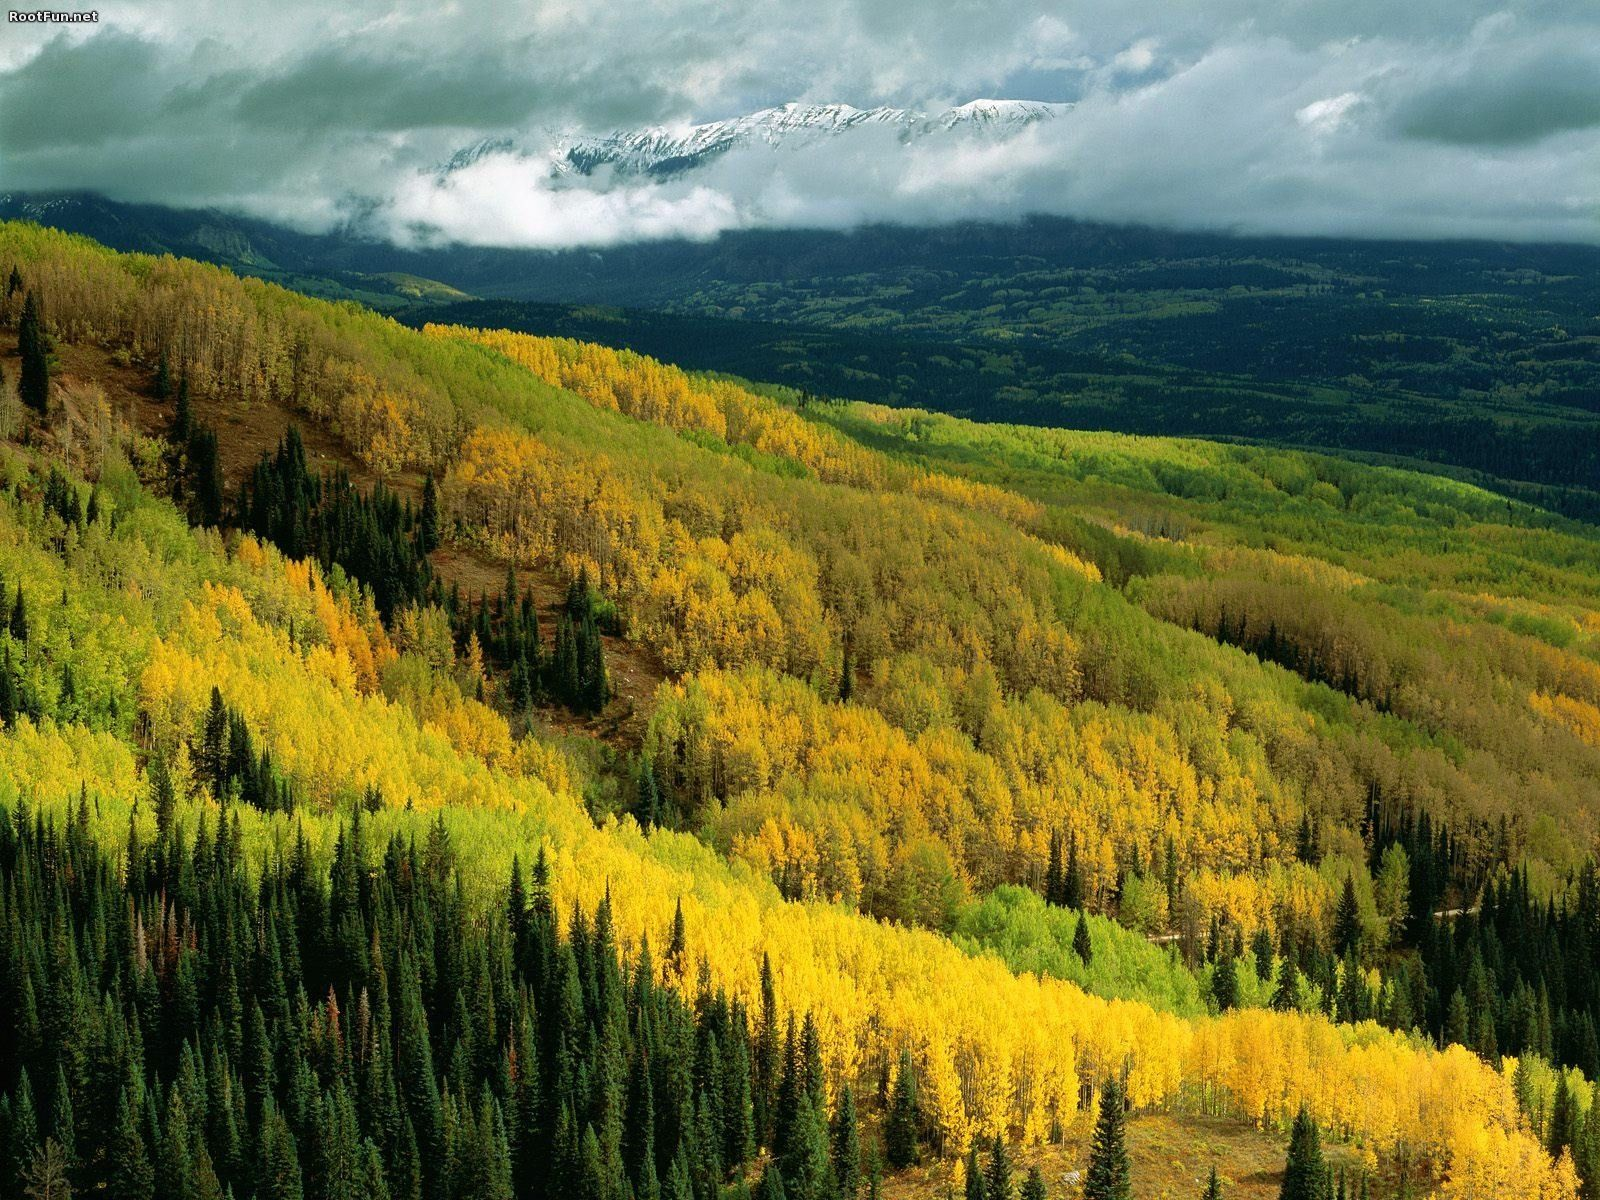 Early fall in Ohio Pass, up the road from the ranch  http://rootfun.net/images/2012/02/Aspen-Forest-in-Early-Fall-Ohio-Pass-Gunnison-National-Forest-Colorado.jpg  Aspen-Forest-in-Early-Fall-Ohio-Pass-Gunnison-National-Forest-Colorado.jpg (1600×1200)